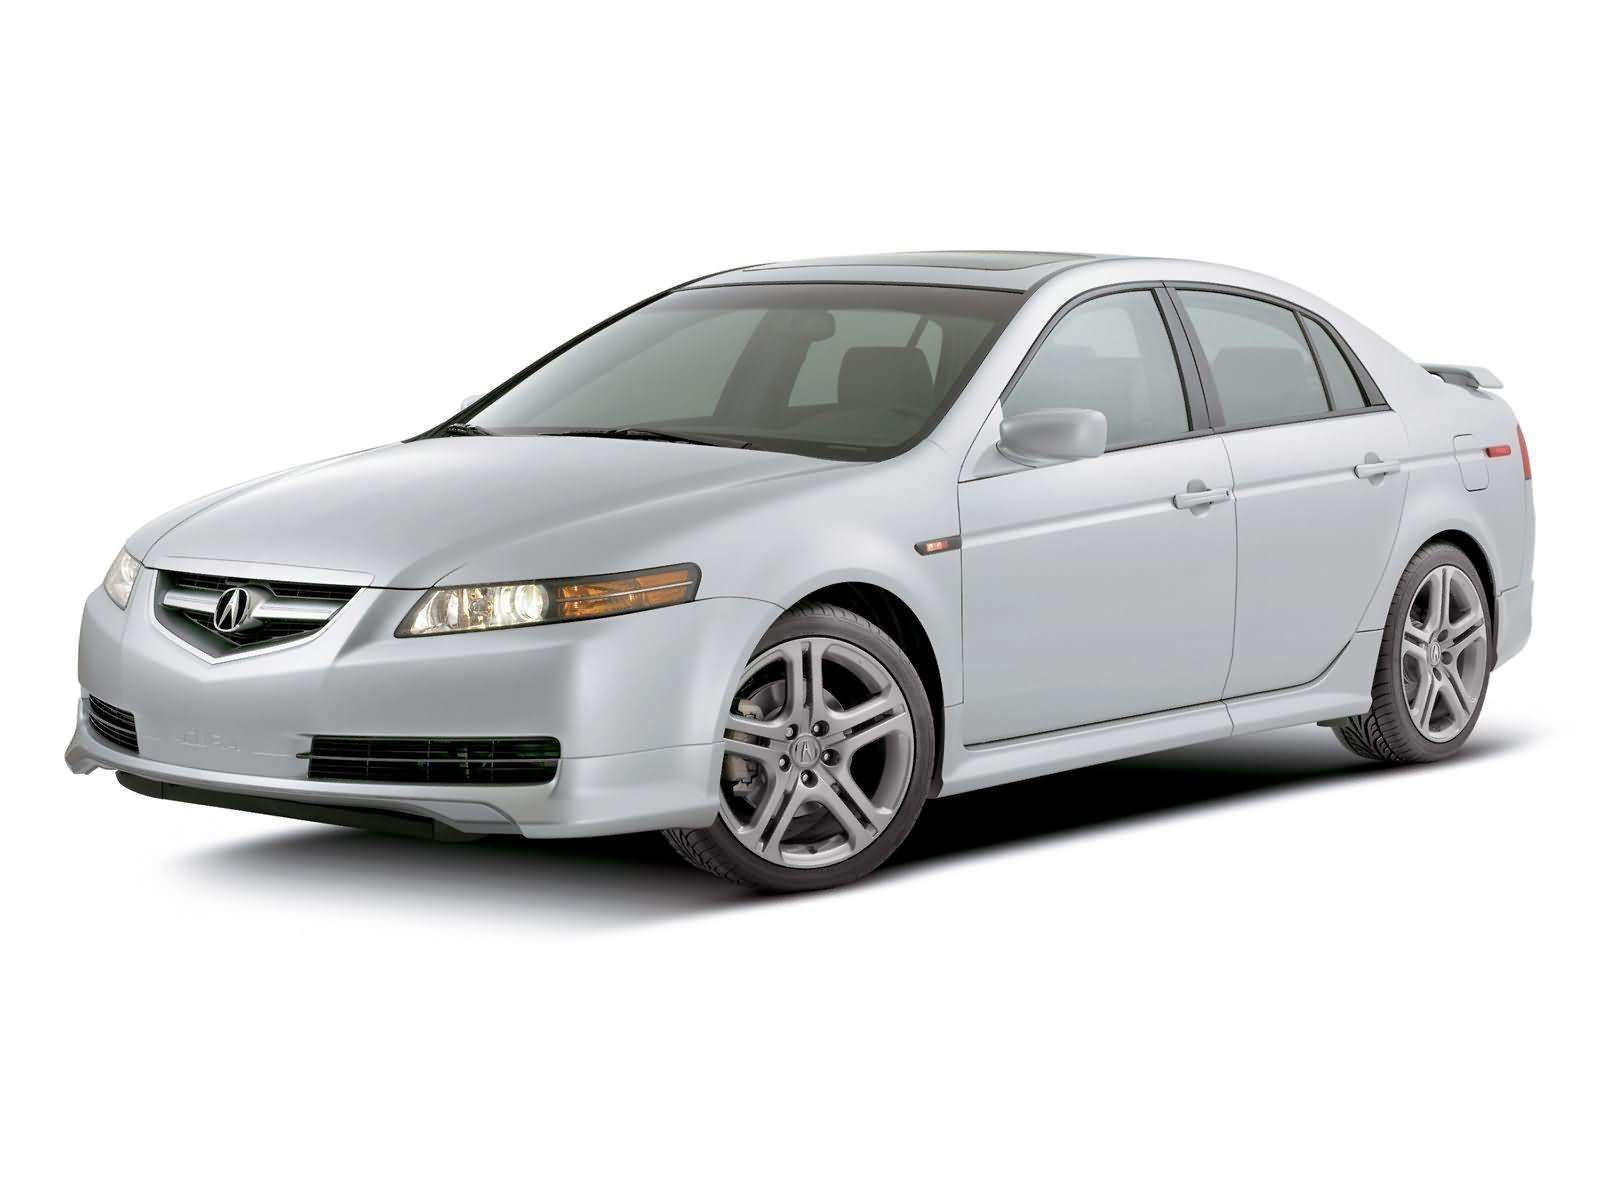 2004 Acura TL with ASPEC Performance Package photo - 2